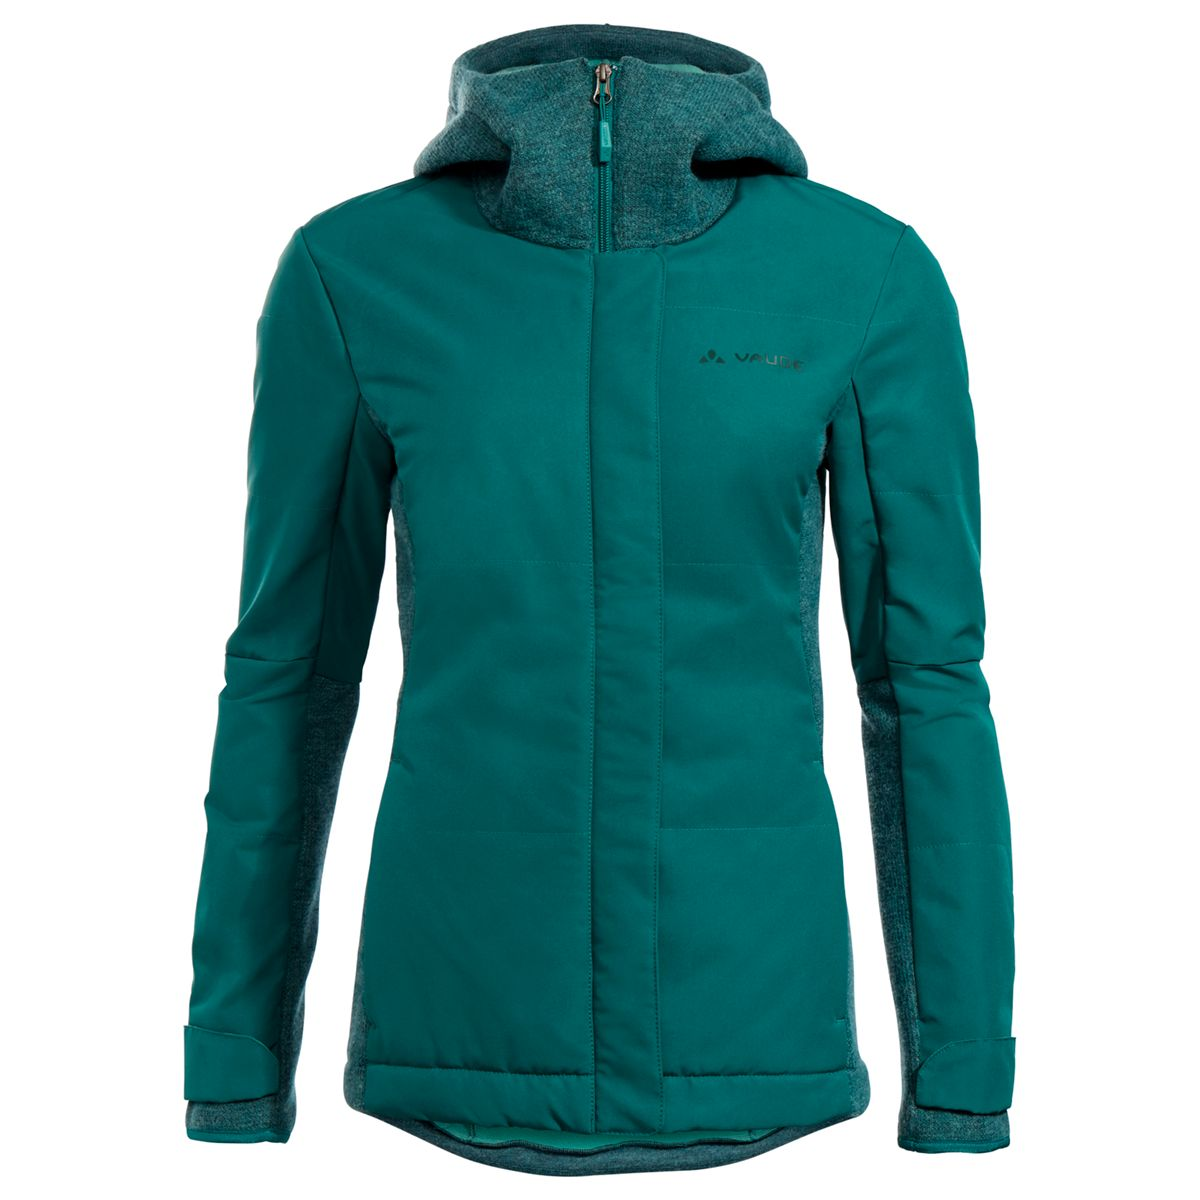 Women's Cyclist Padded Jacket III